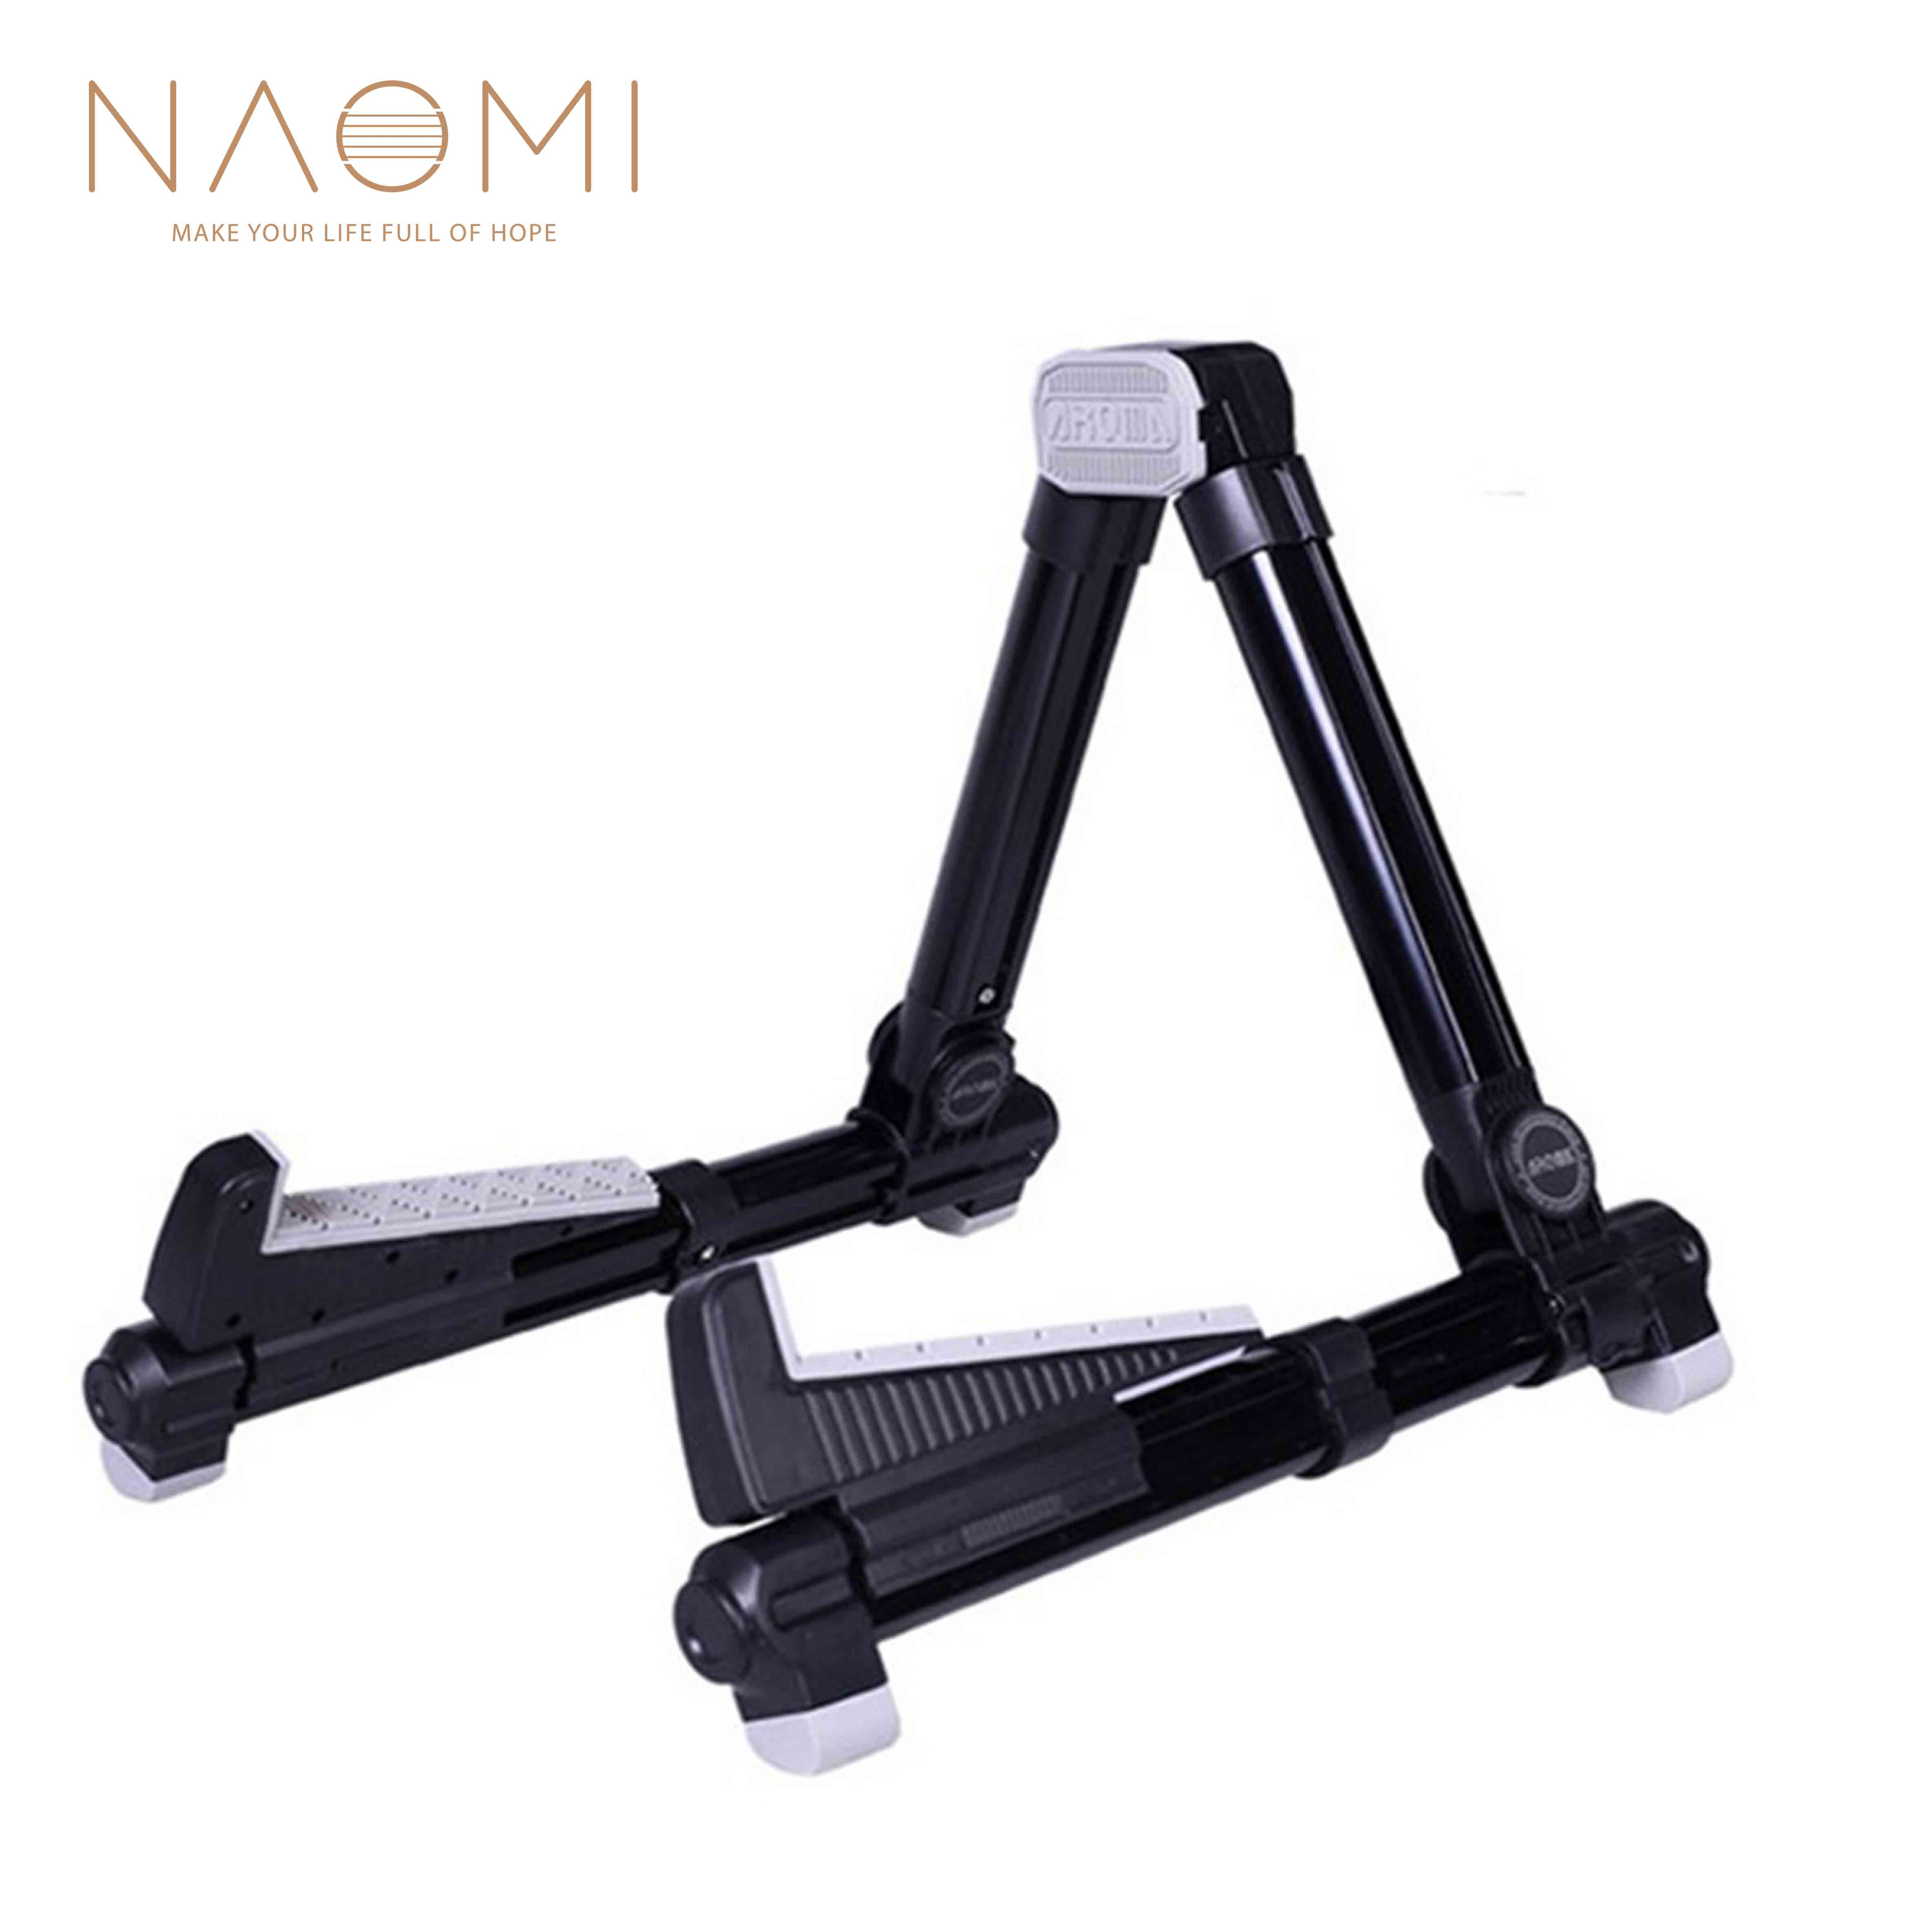 NAOMI AROMA AGS 08 Electric Guitar Stand Folding Adjustable Guitar Stand Aluminum Alloy A Frame Stand Black